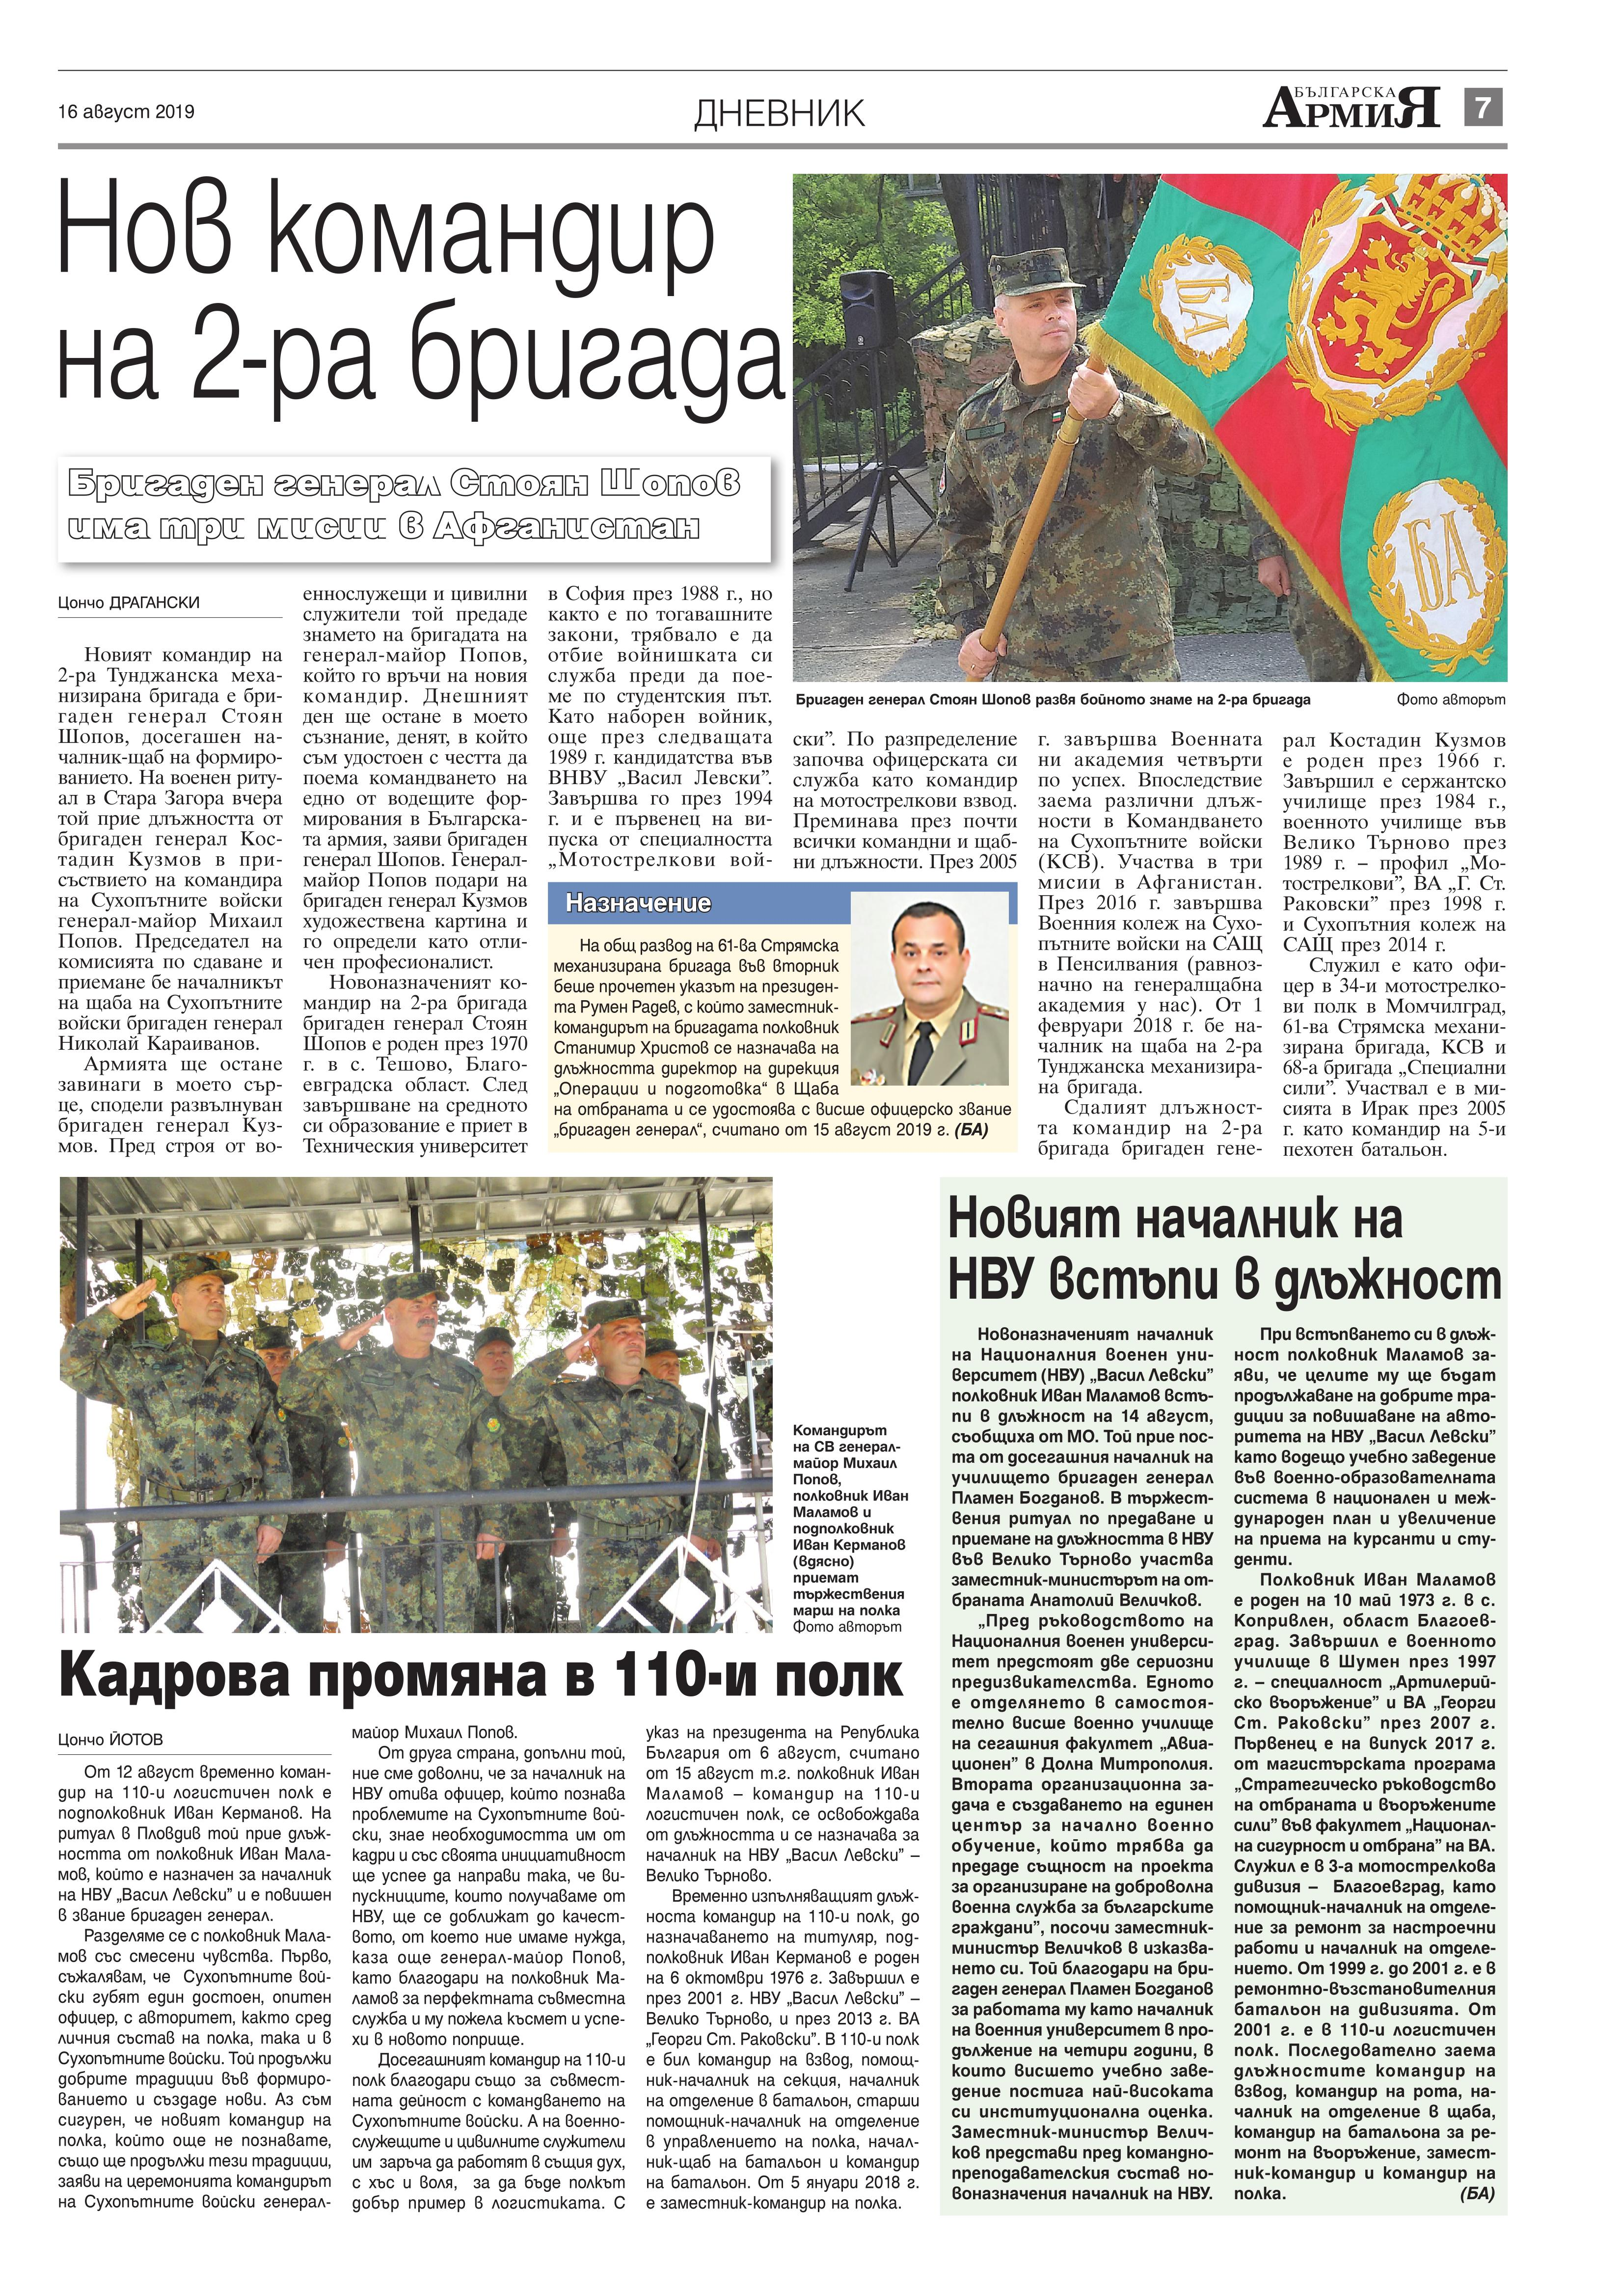 https://armymedia.bg/wp-content/uploads/2015/06/07.page1_-104.jpg